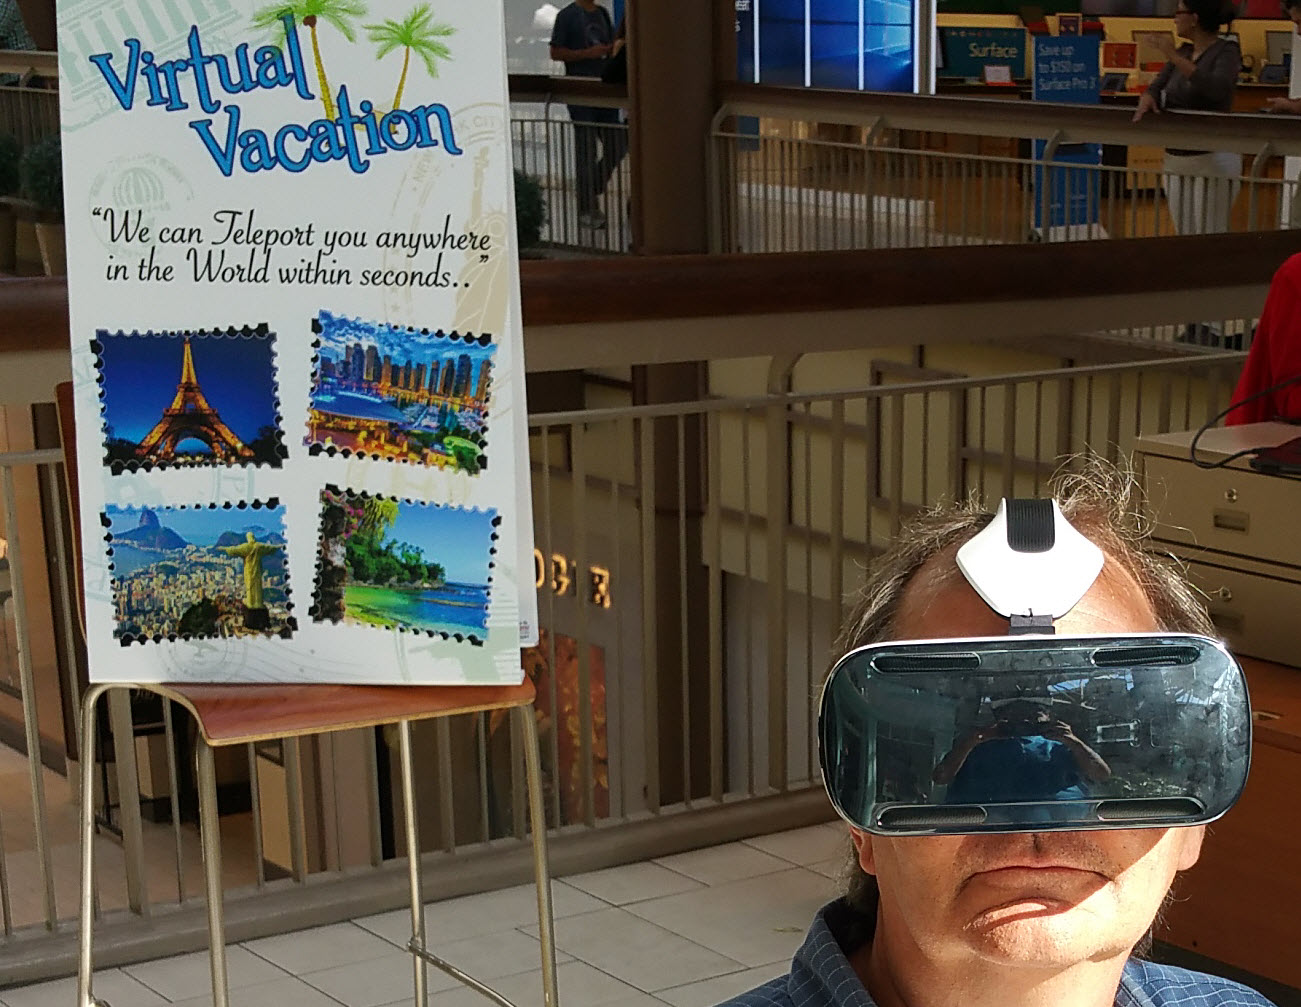 Insights from taking a virtual safari on a folding chair at the mall